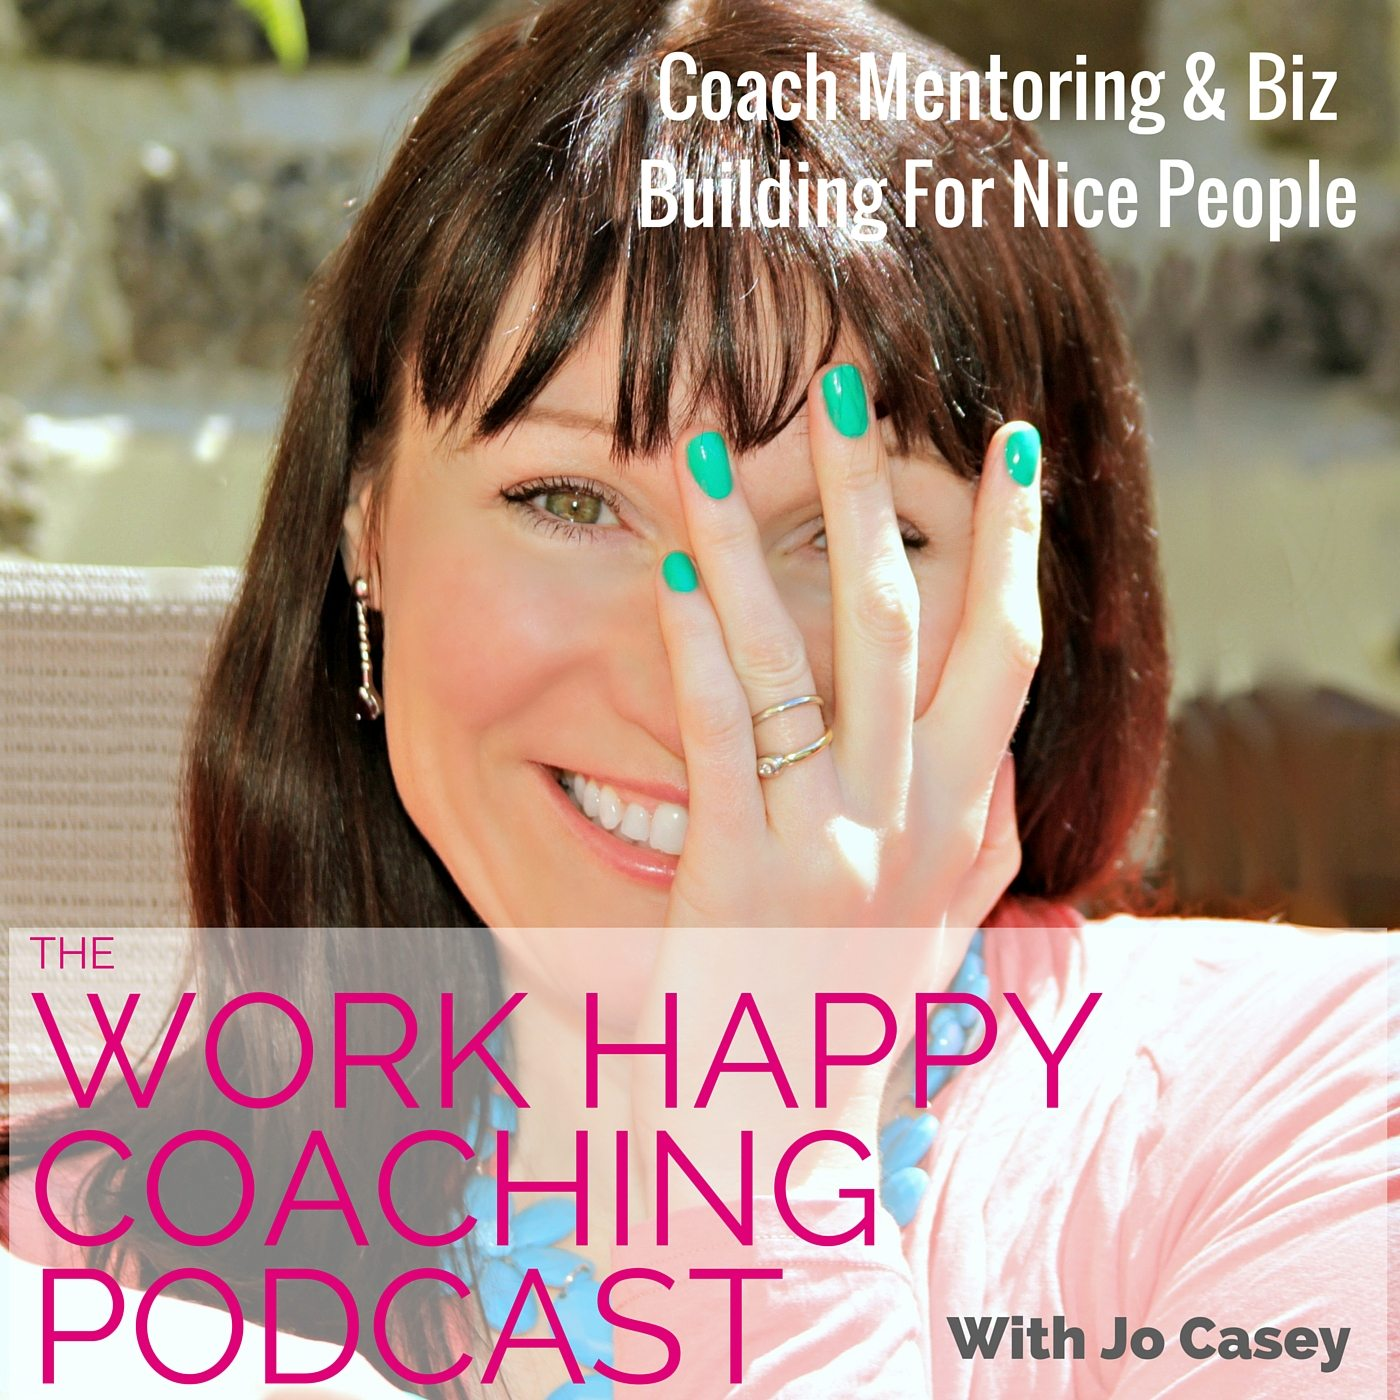 The Work Happy Coaching Podcast